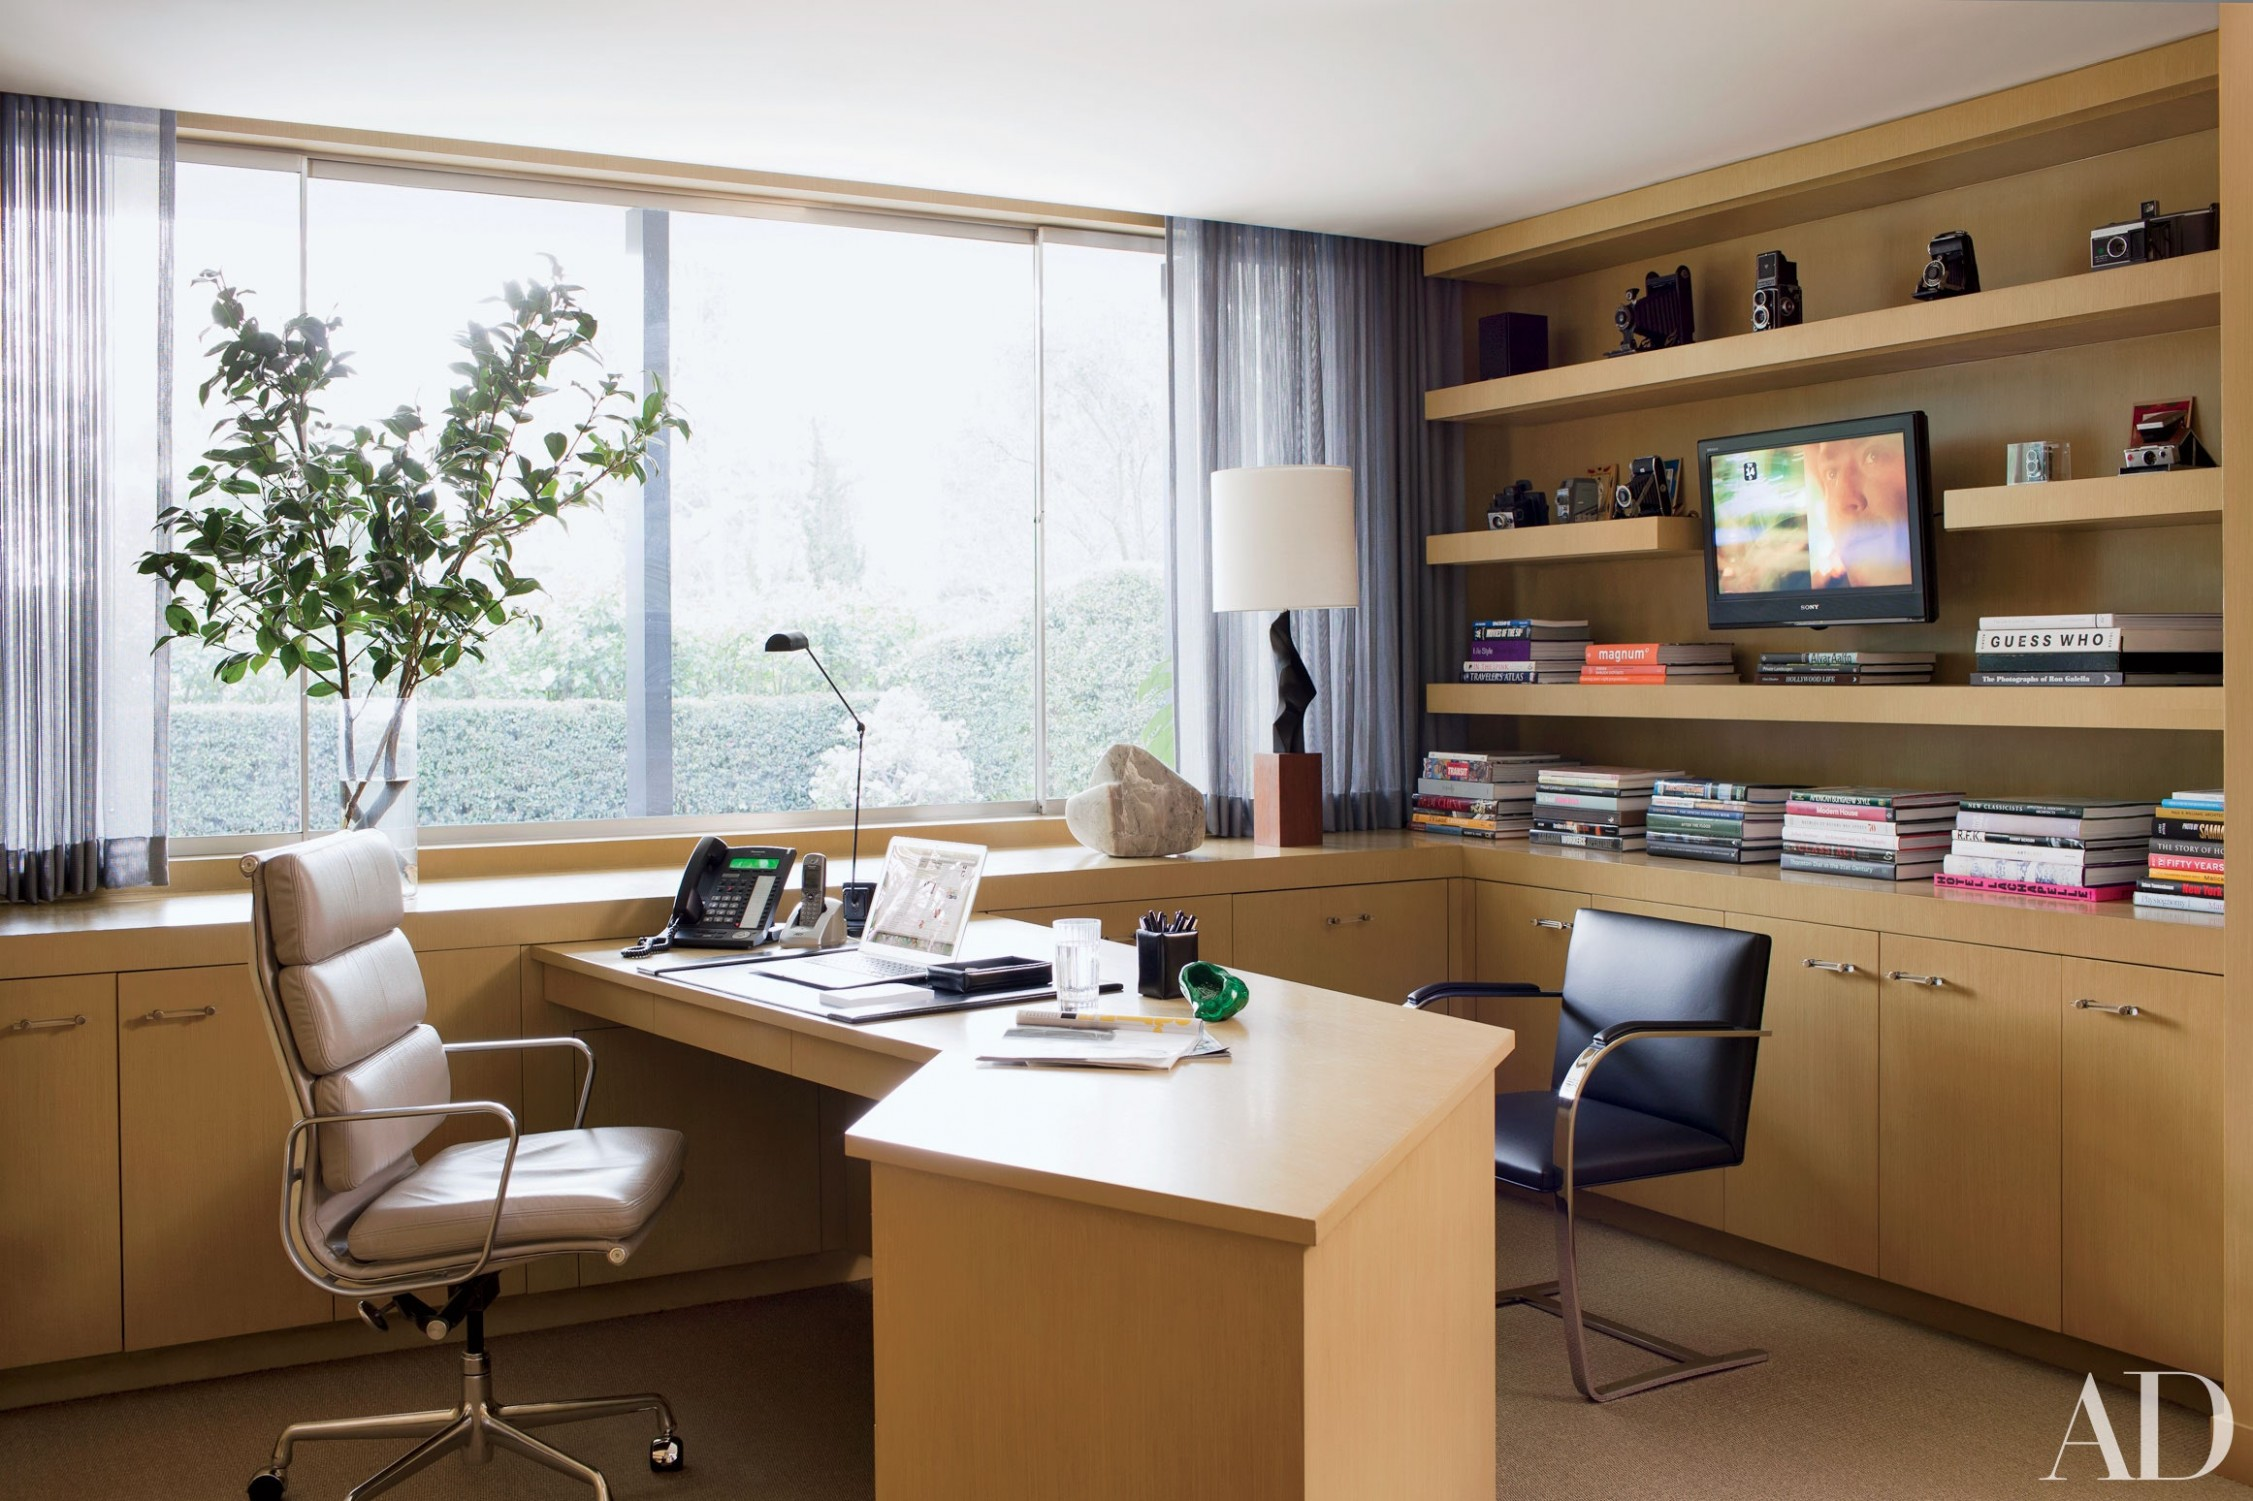 12 Home Office Ideas That Will Inspire Productivity  - Home Office Renovation Ideas